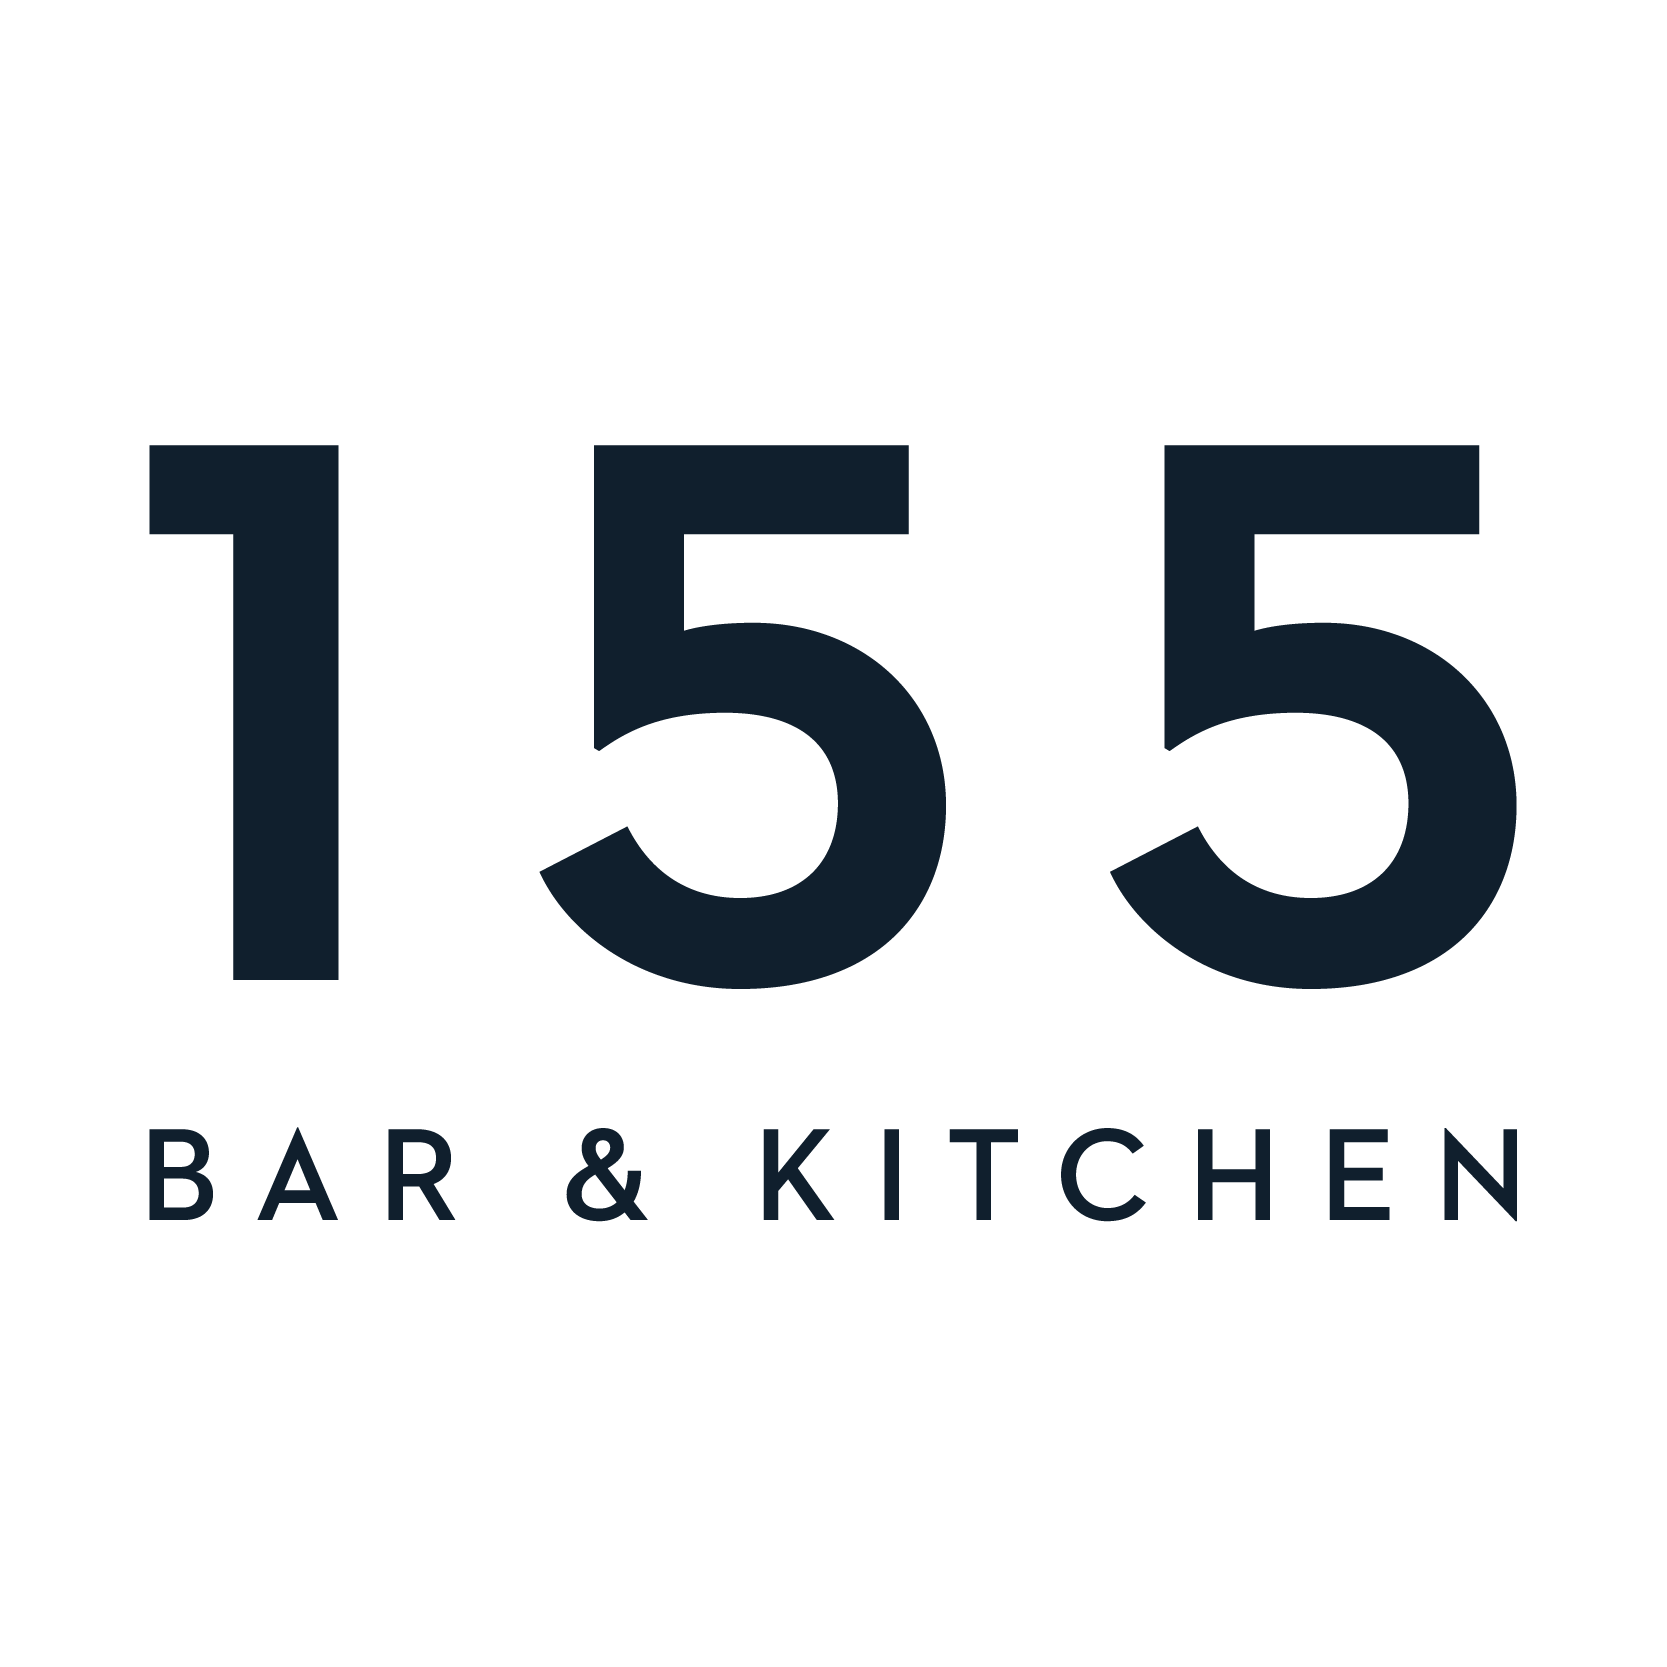 155 Bar & Kitchen